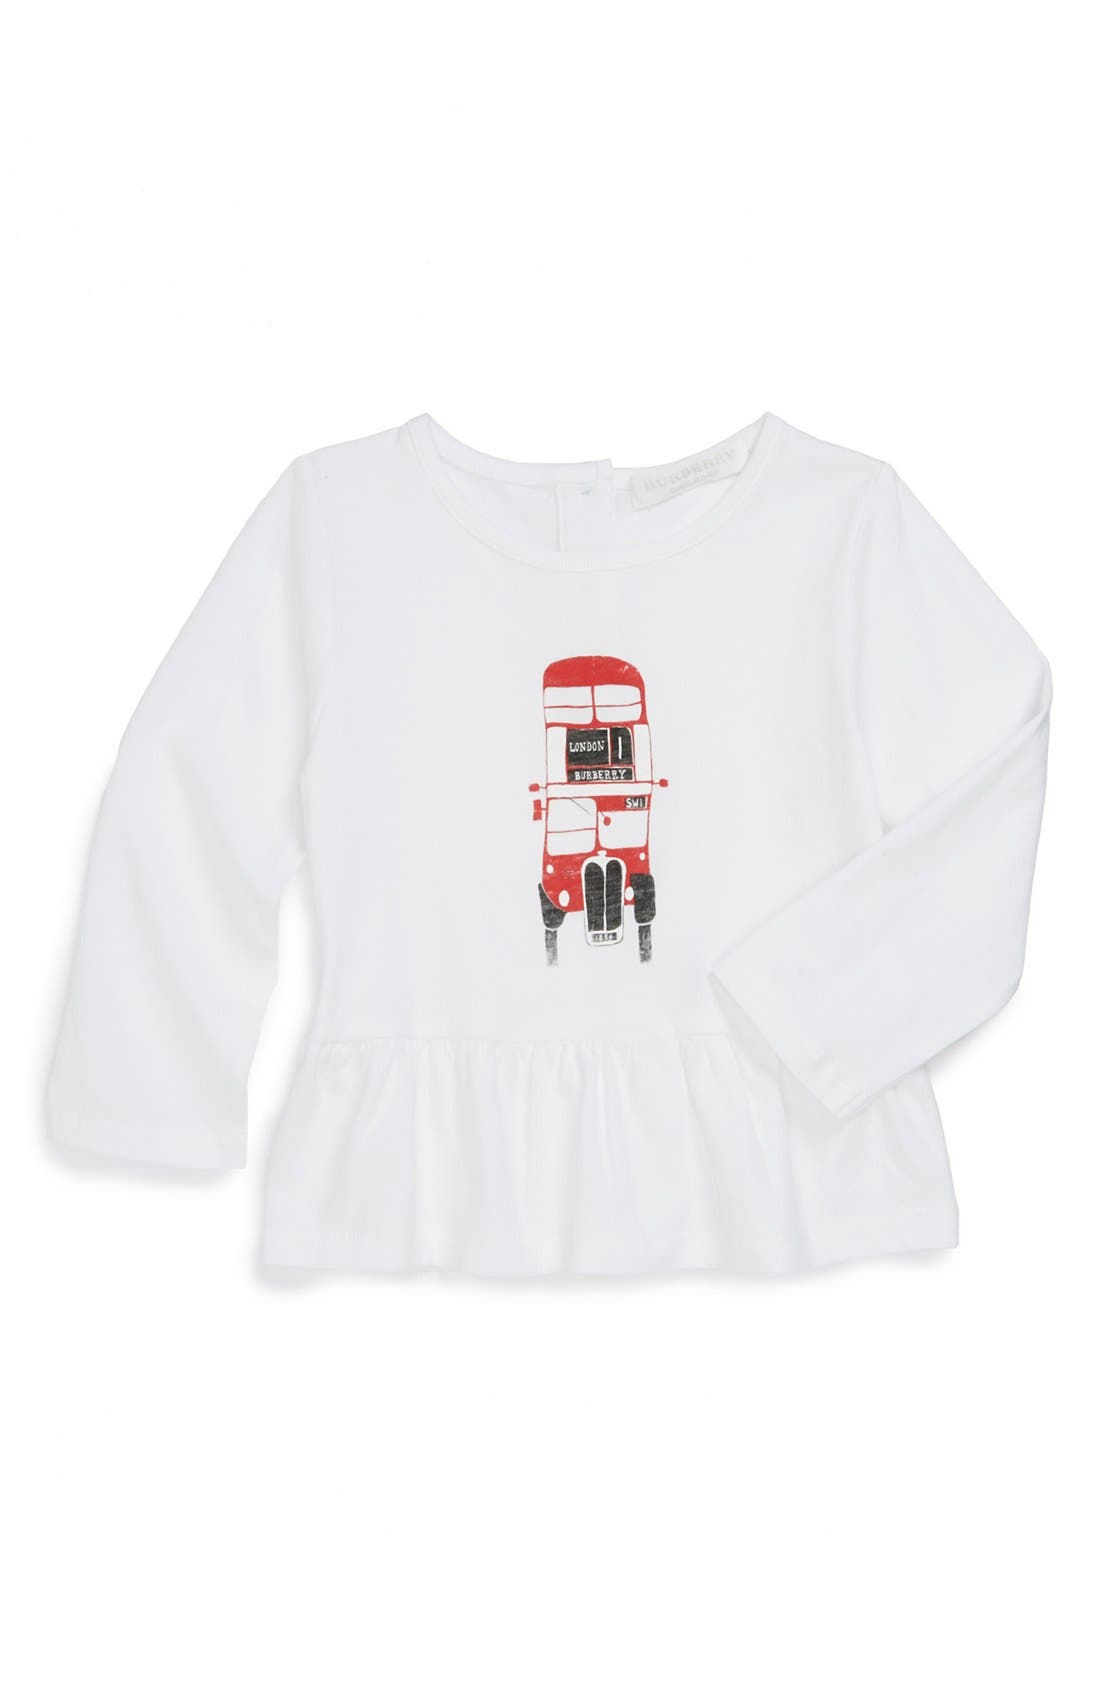 Alternate Image 1 Selected - Burberry Graphic Tee (Toddler Girls)